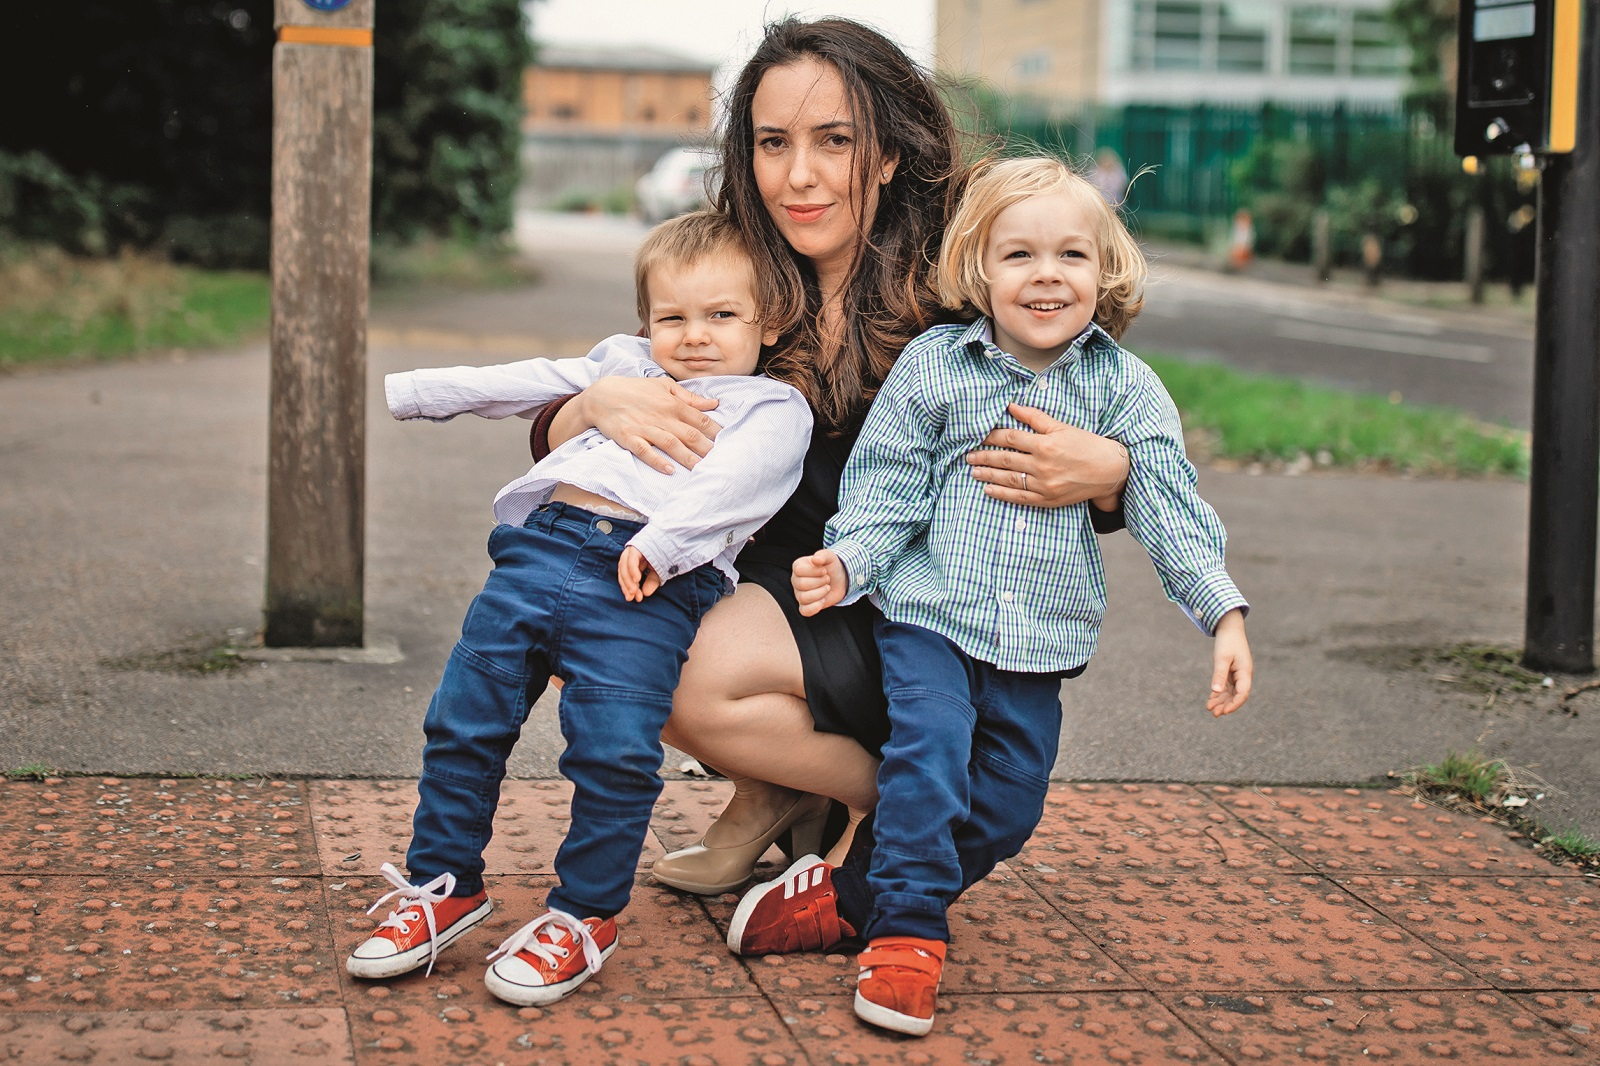 Stella Moris (centre) and sons, Gabriel (right) and Max (left) leave Belmarsh Prison after visiting her partner and their father, Julian Assange.,Image: 554989864, License: Rights-managed, Restrictions: , Model Release: no, Credit line: Aaron Chown / PA Images / Profimedia